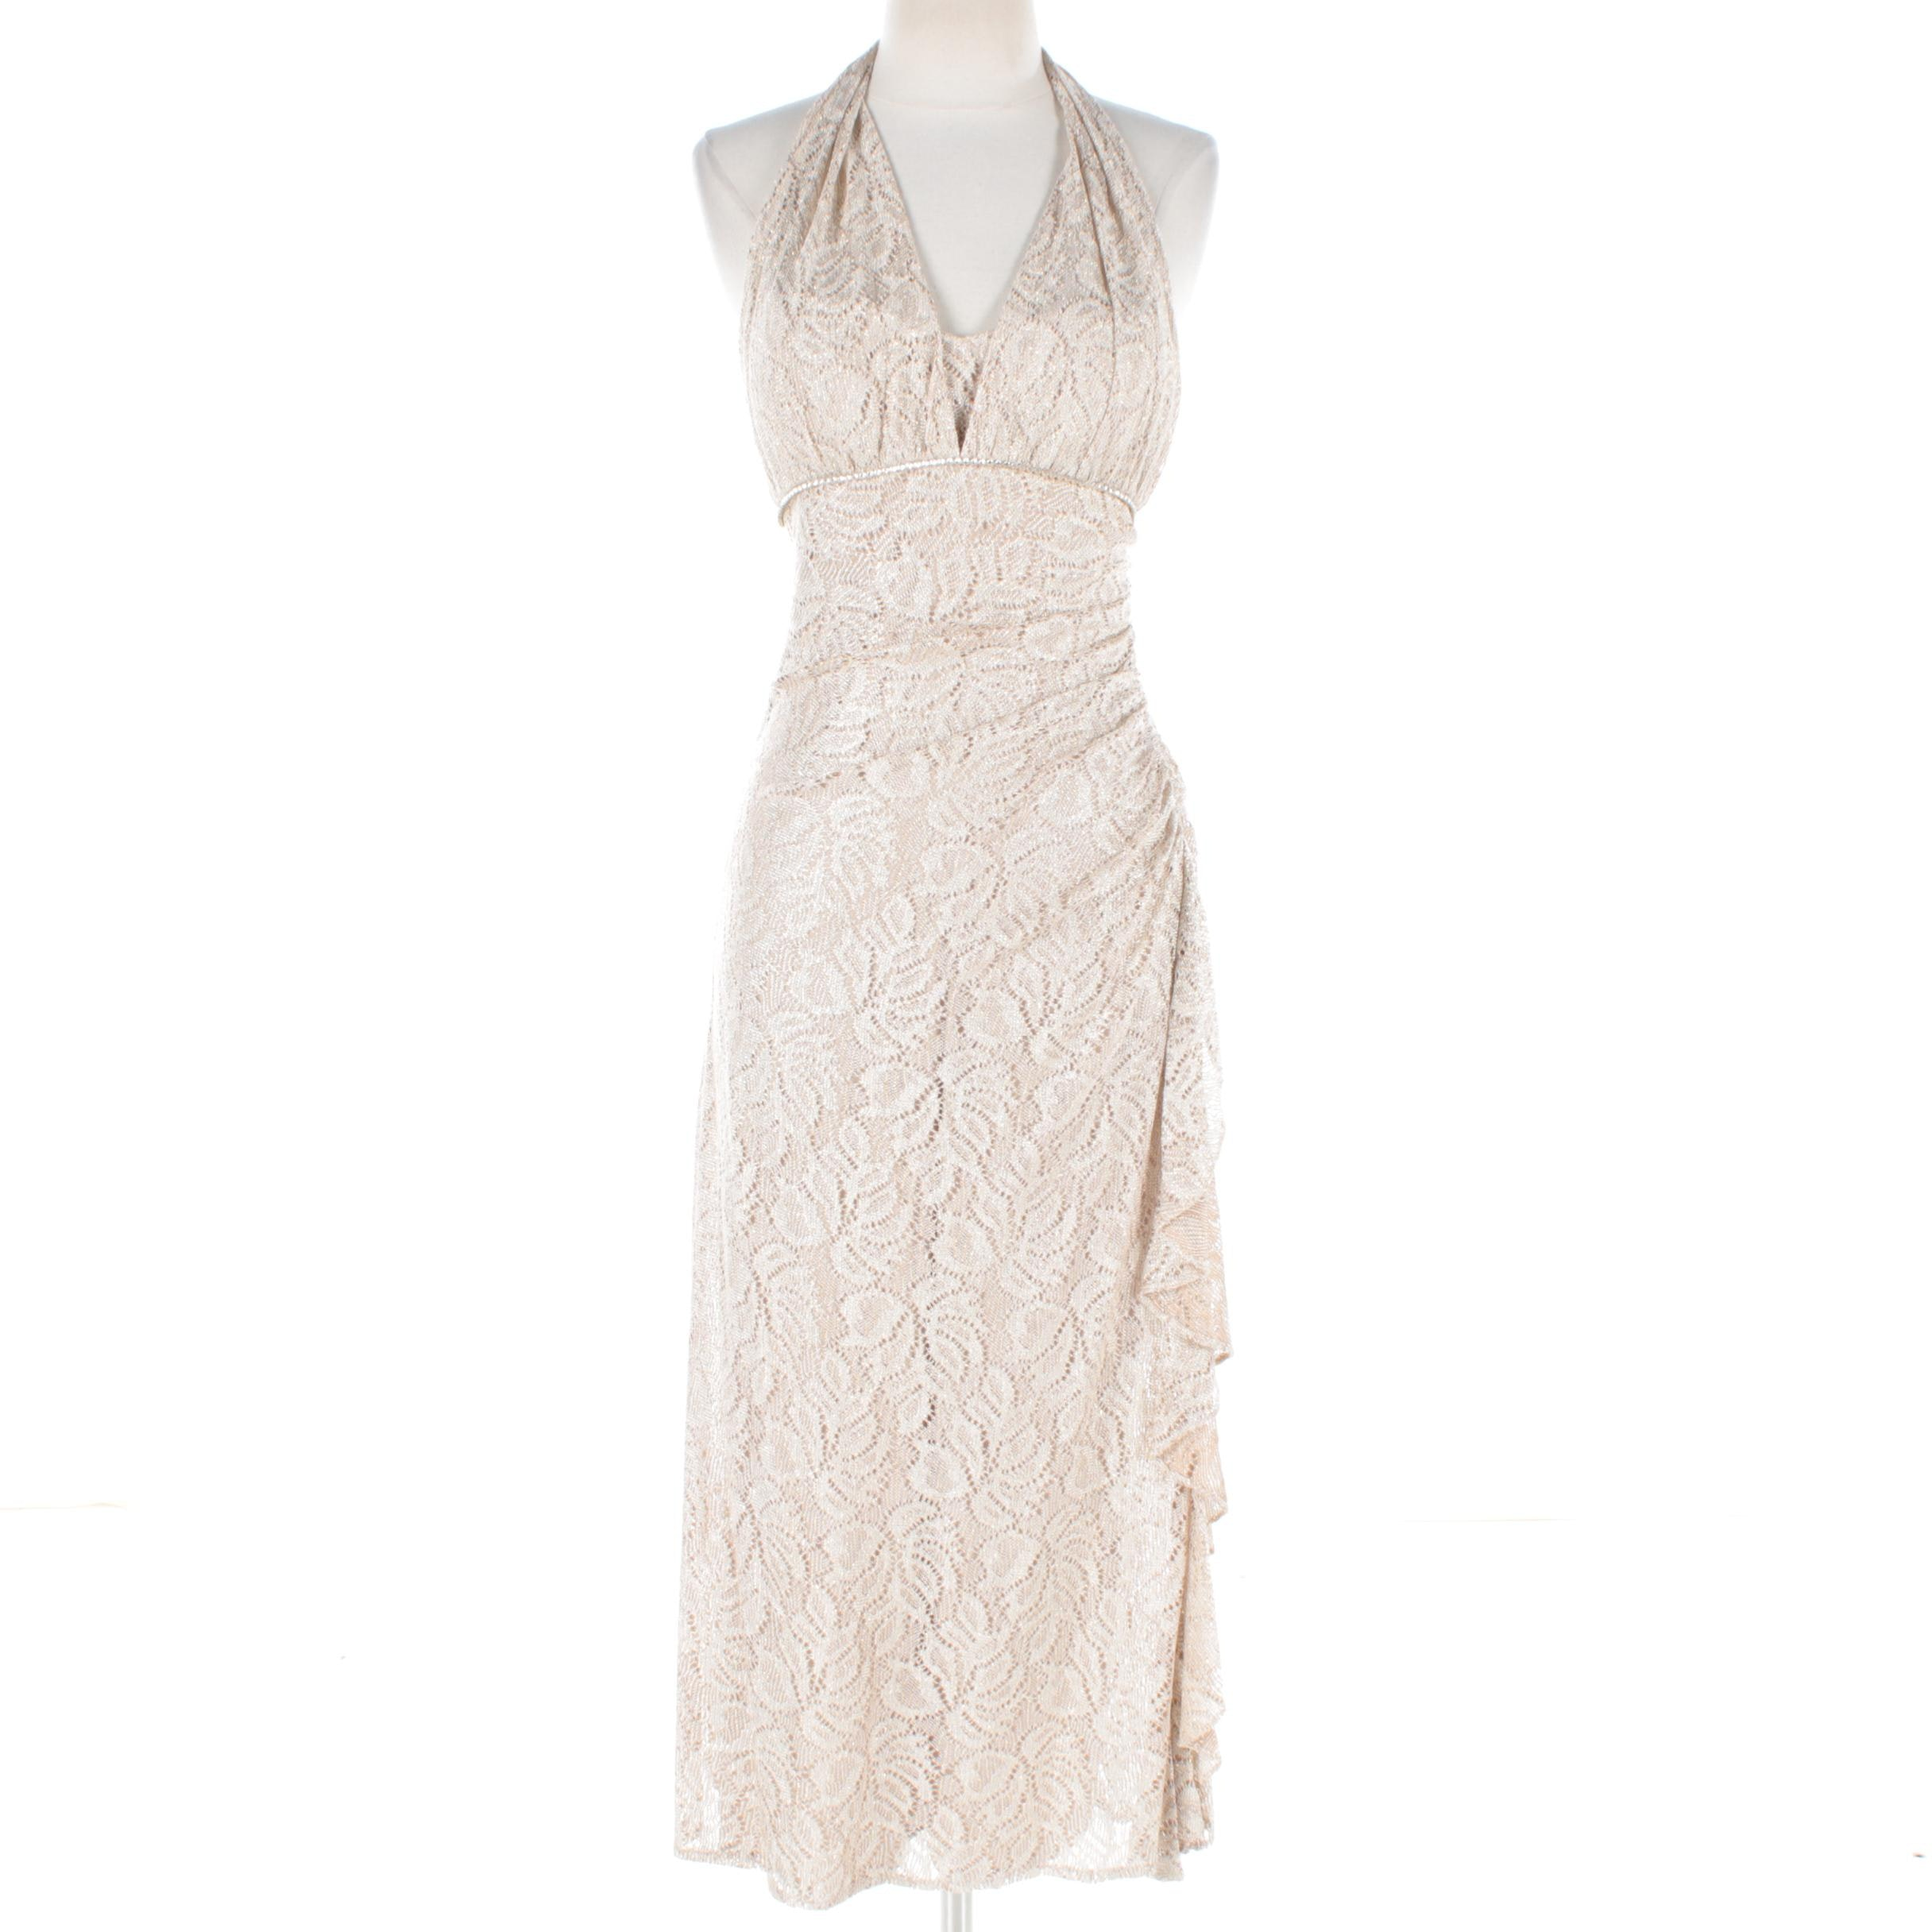 Betsy & Adam by Linda Bernell Cream-Colored Crochet Knit Halter Dress